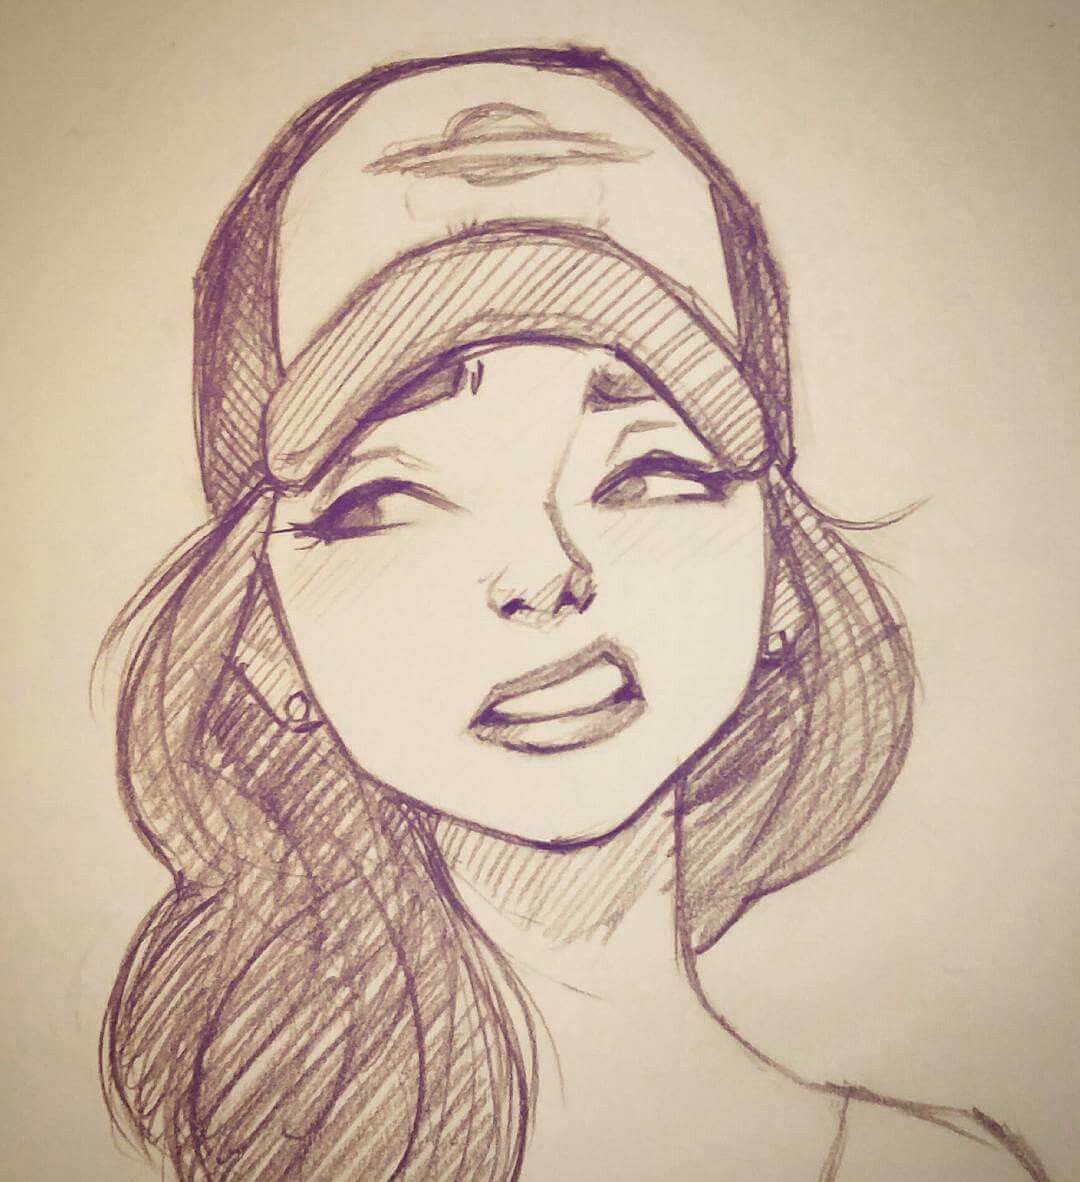 Unknown artist girl face drawing sketch girl face cartoon girl drawing person sketch